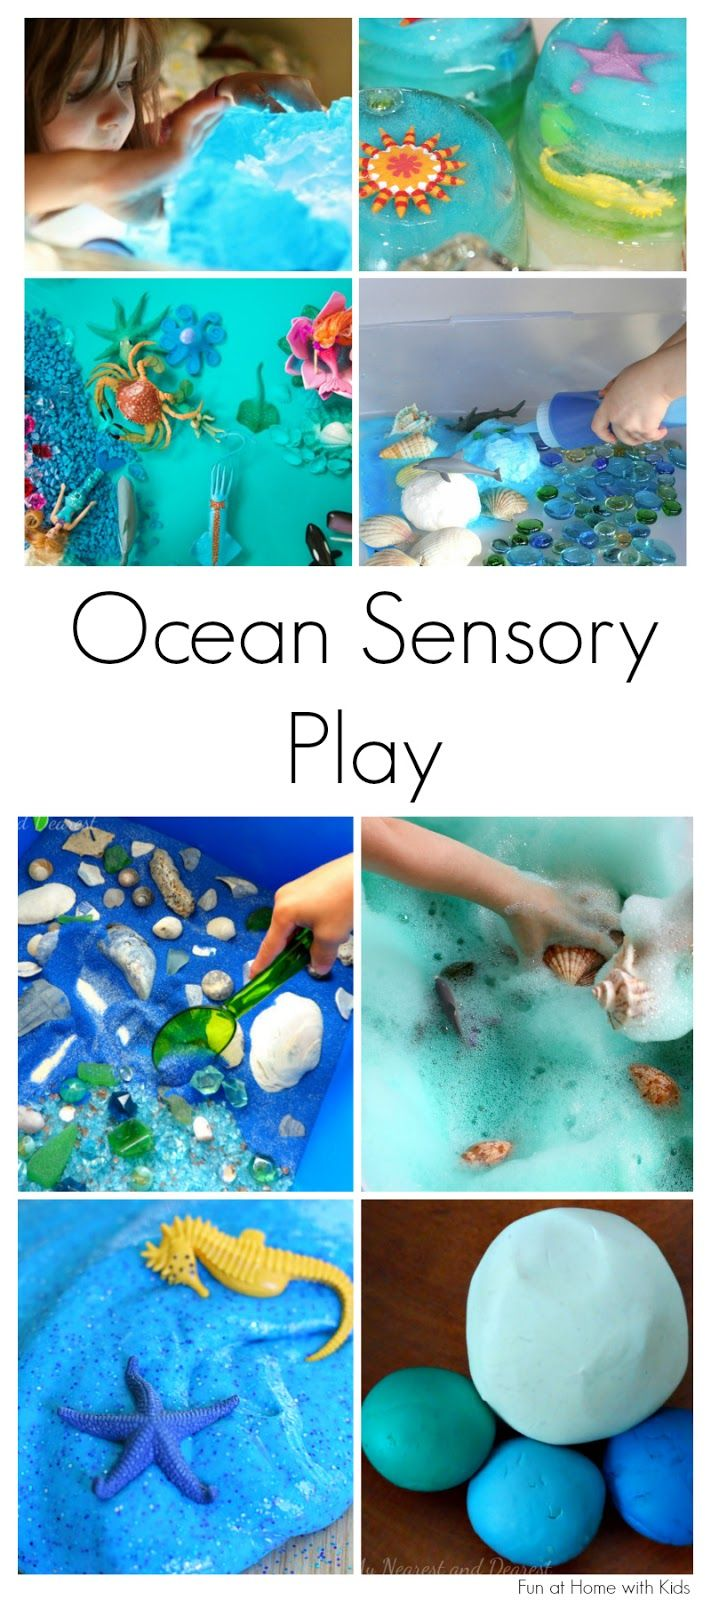 15 of the best ideas for Ocean-themed Sensory Play.  Includes ideas for babies, toddlers, preschoolers, and older children.  From Fun at Hom...